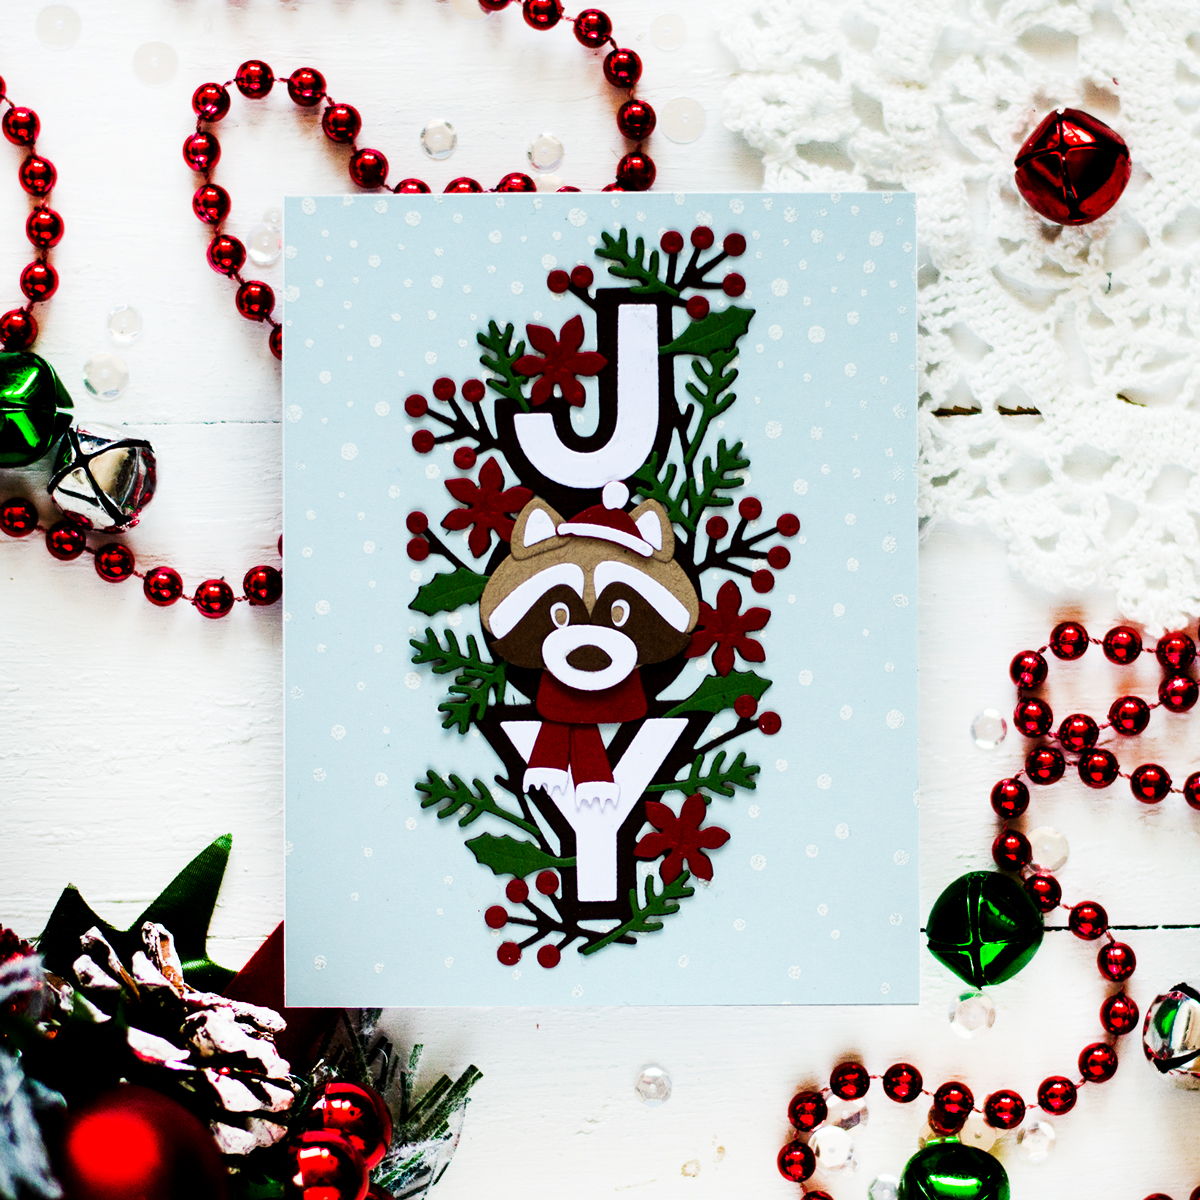 Handmade Die Cut Holiday Cards. Card by Svitlana Shayevich